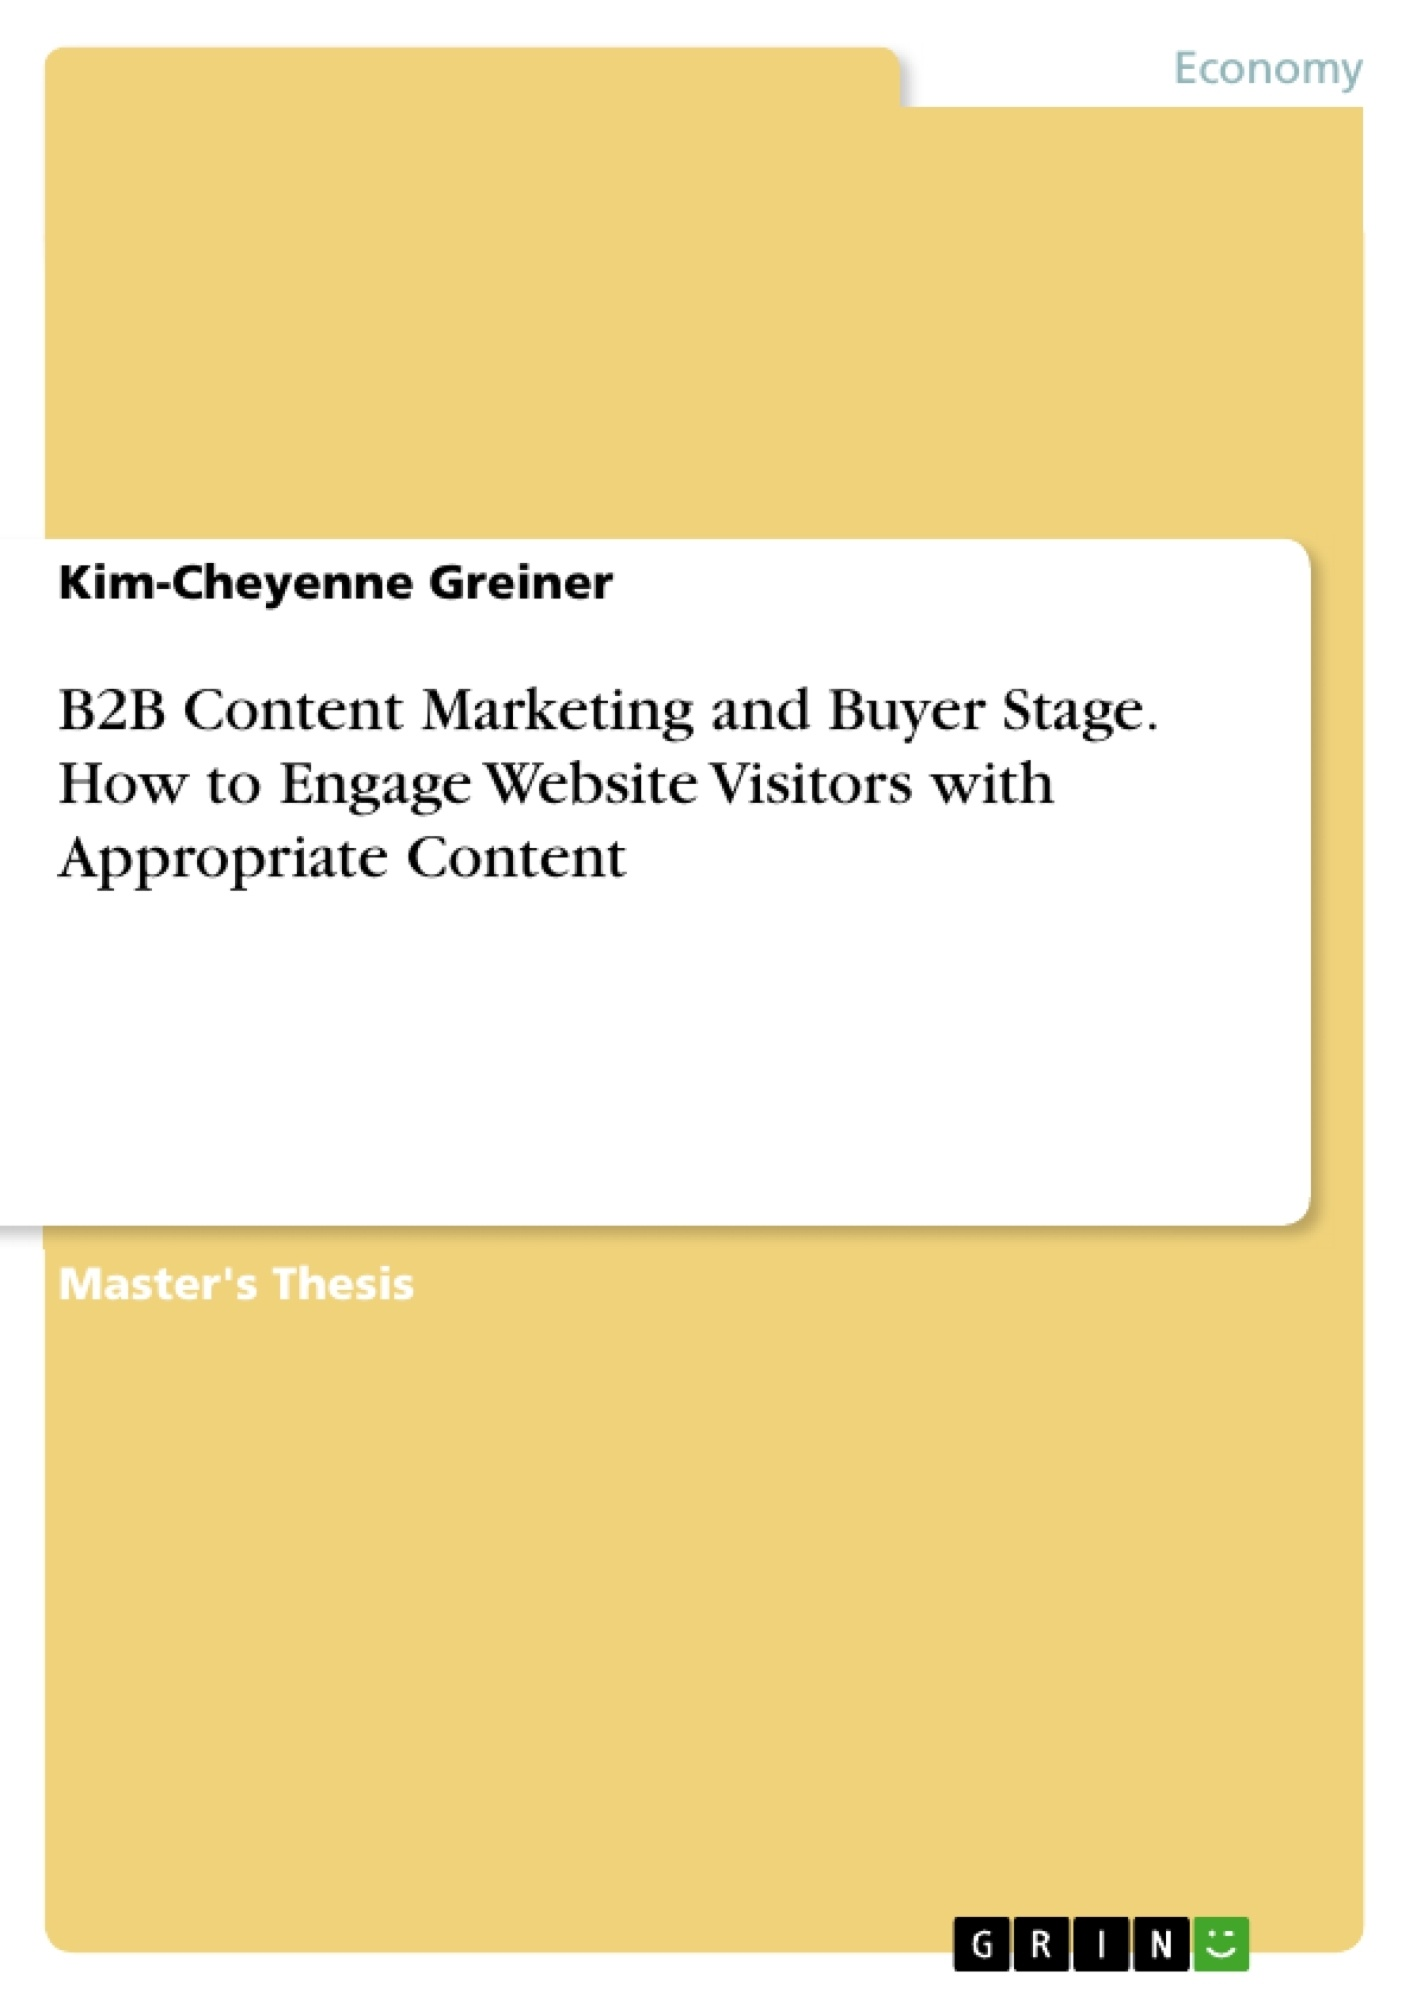 Title: B2B Content Marketing and Buyer Stage. How to Engage Website Visitors with Appropriate Content